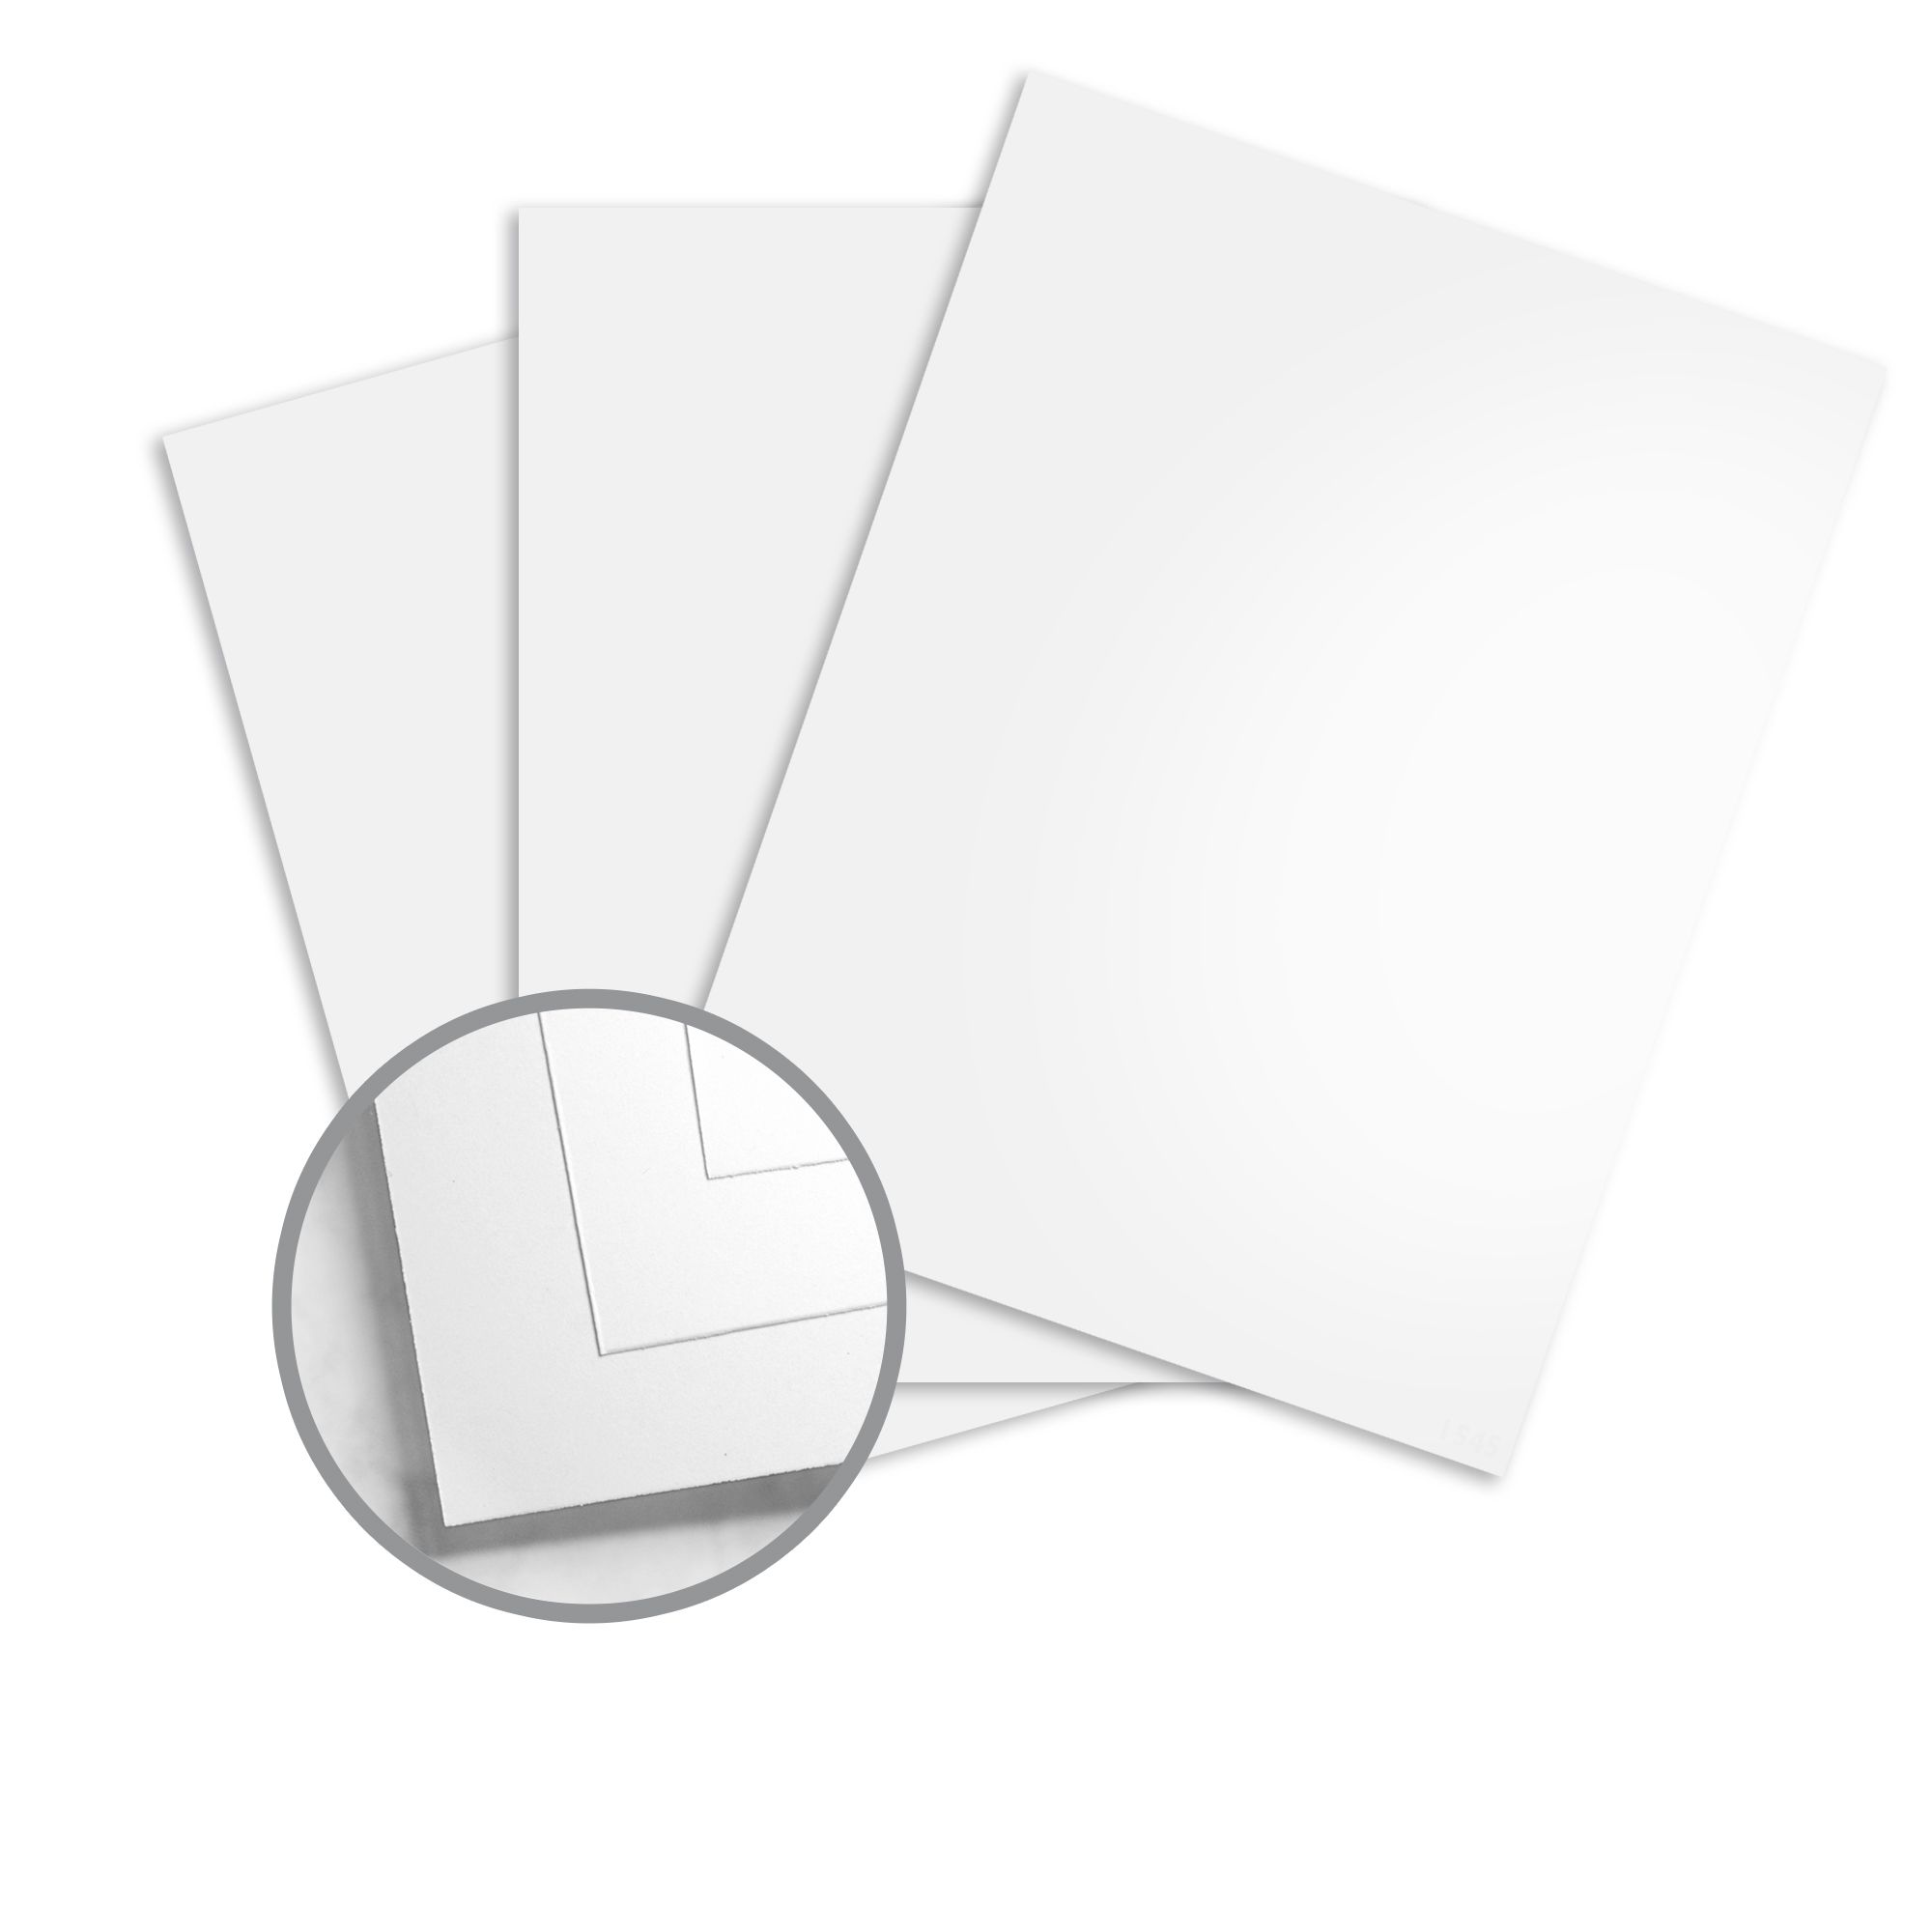 65lb 12 x 12 Fine Square Cardstock 176gsm Cover Bright White Thick Paper Card Stock Smooth Finish | 25 Sheets Per Pack